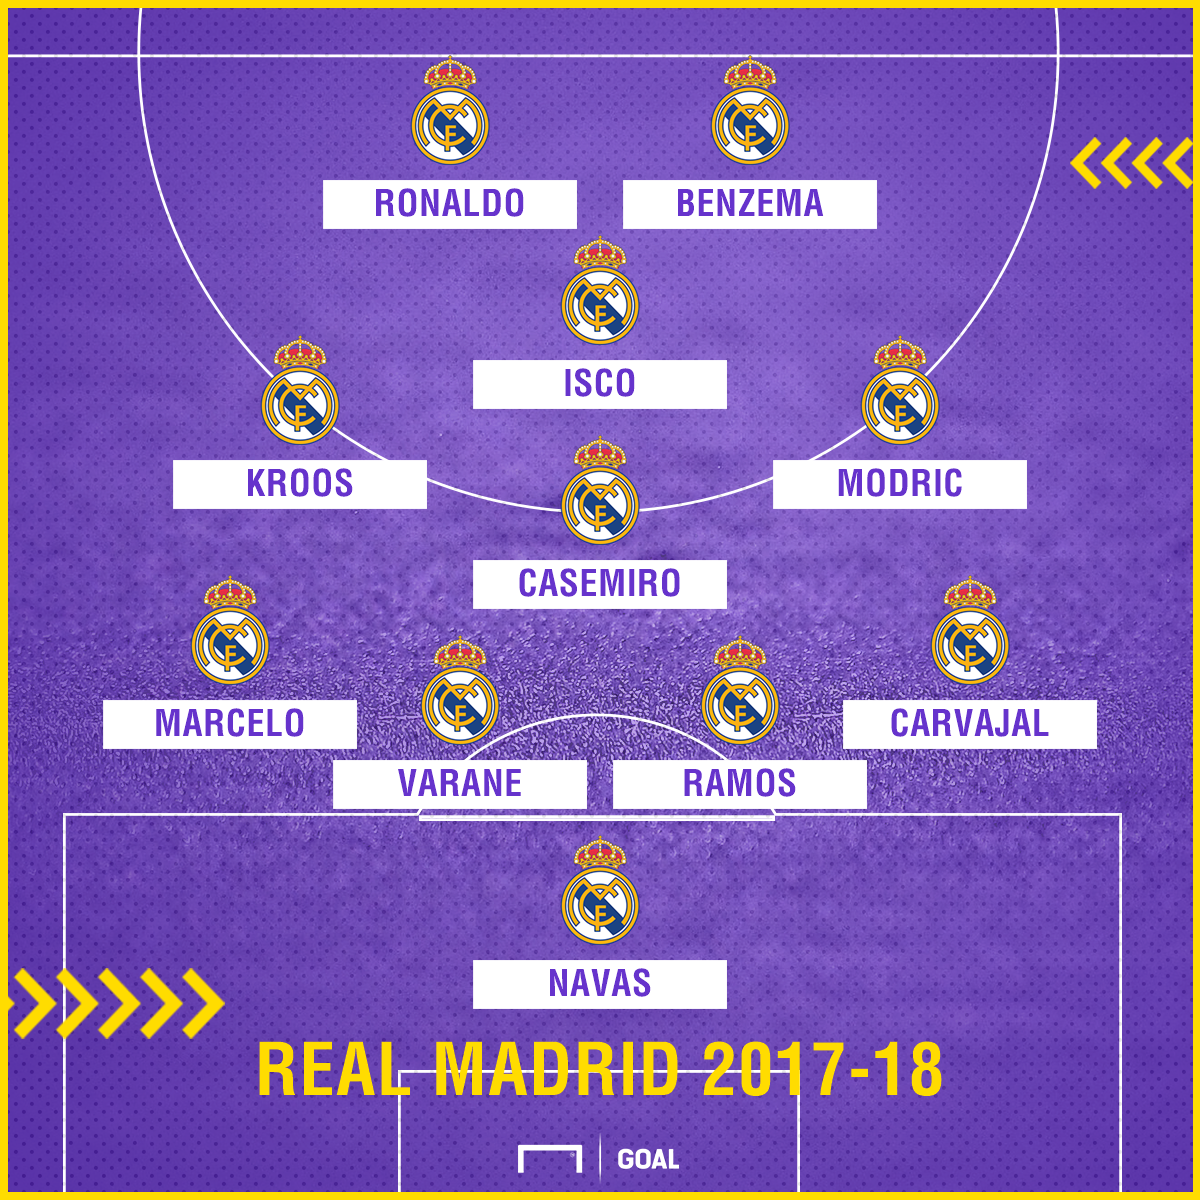 Real Madrid graphic 2017-18